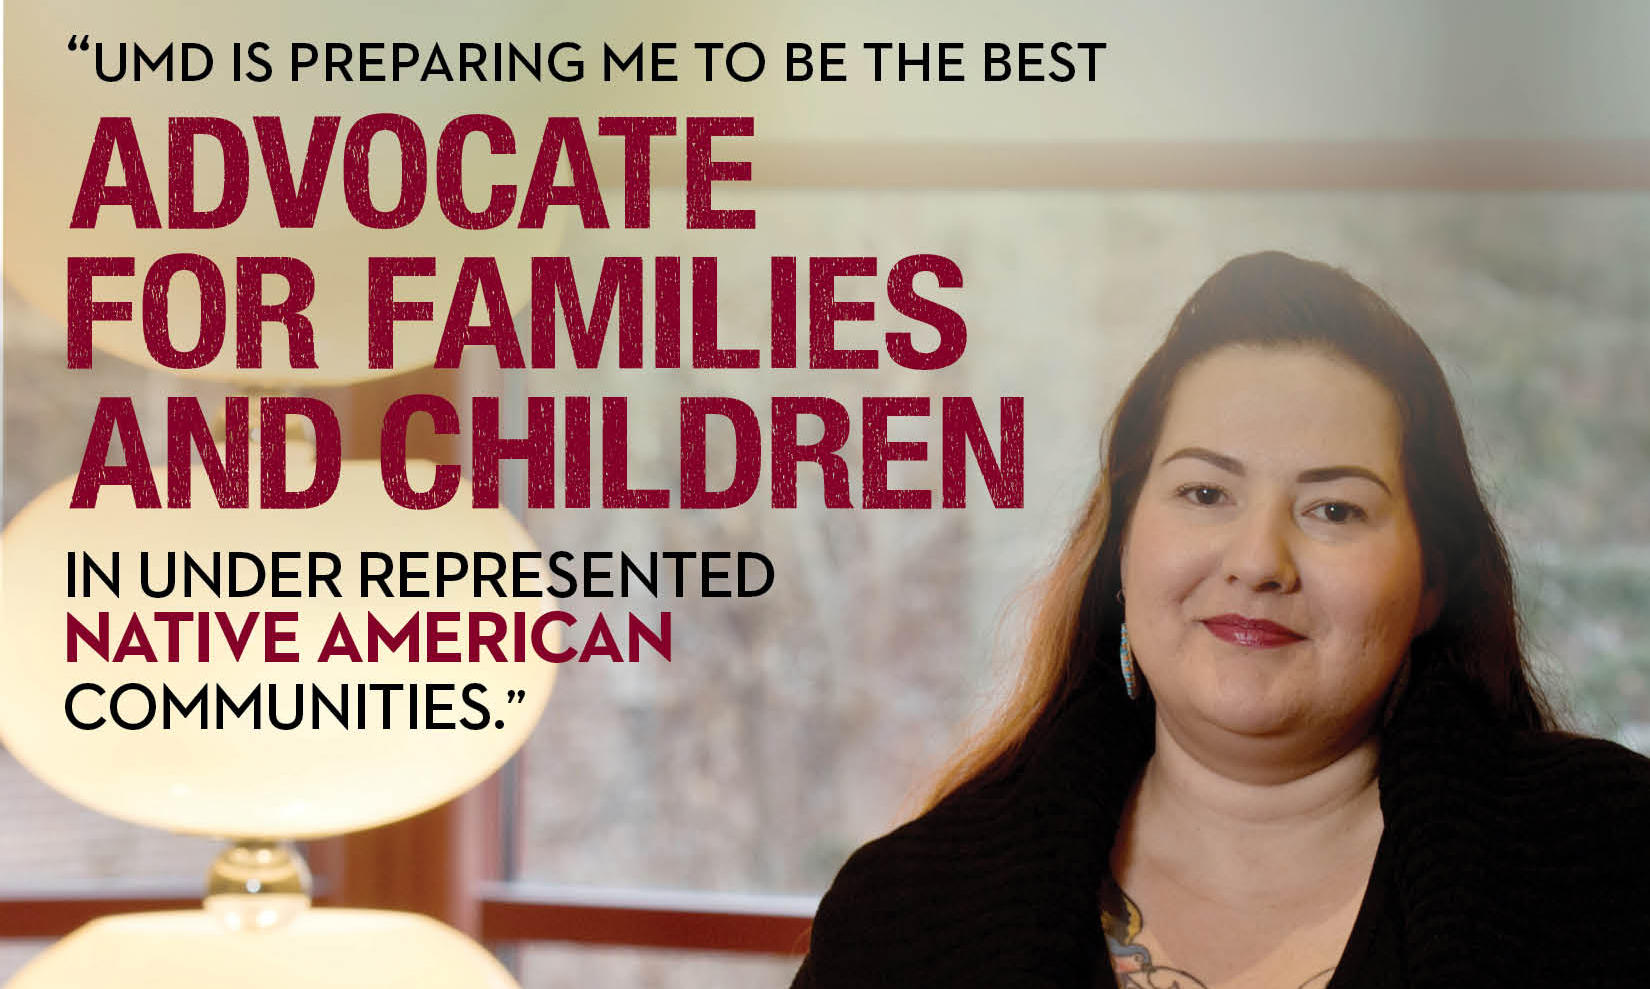 """UMD is preparing me to be the best advocate for families and children in under represented native american communities"" Lynn Brave Heart"